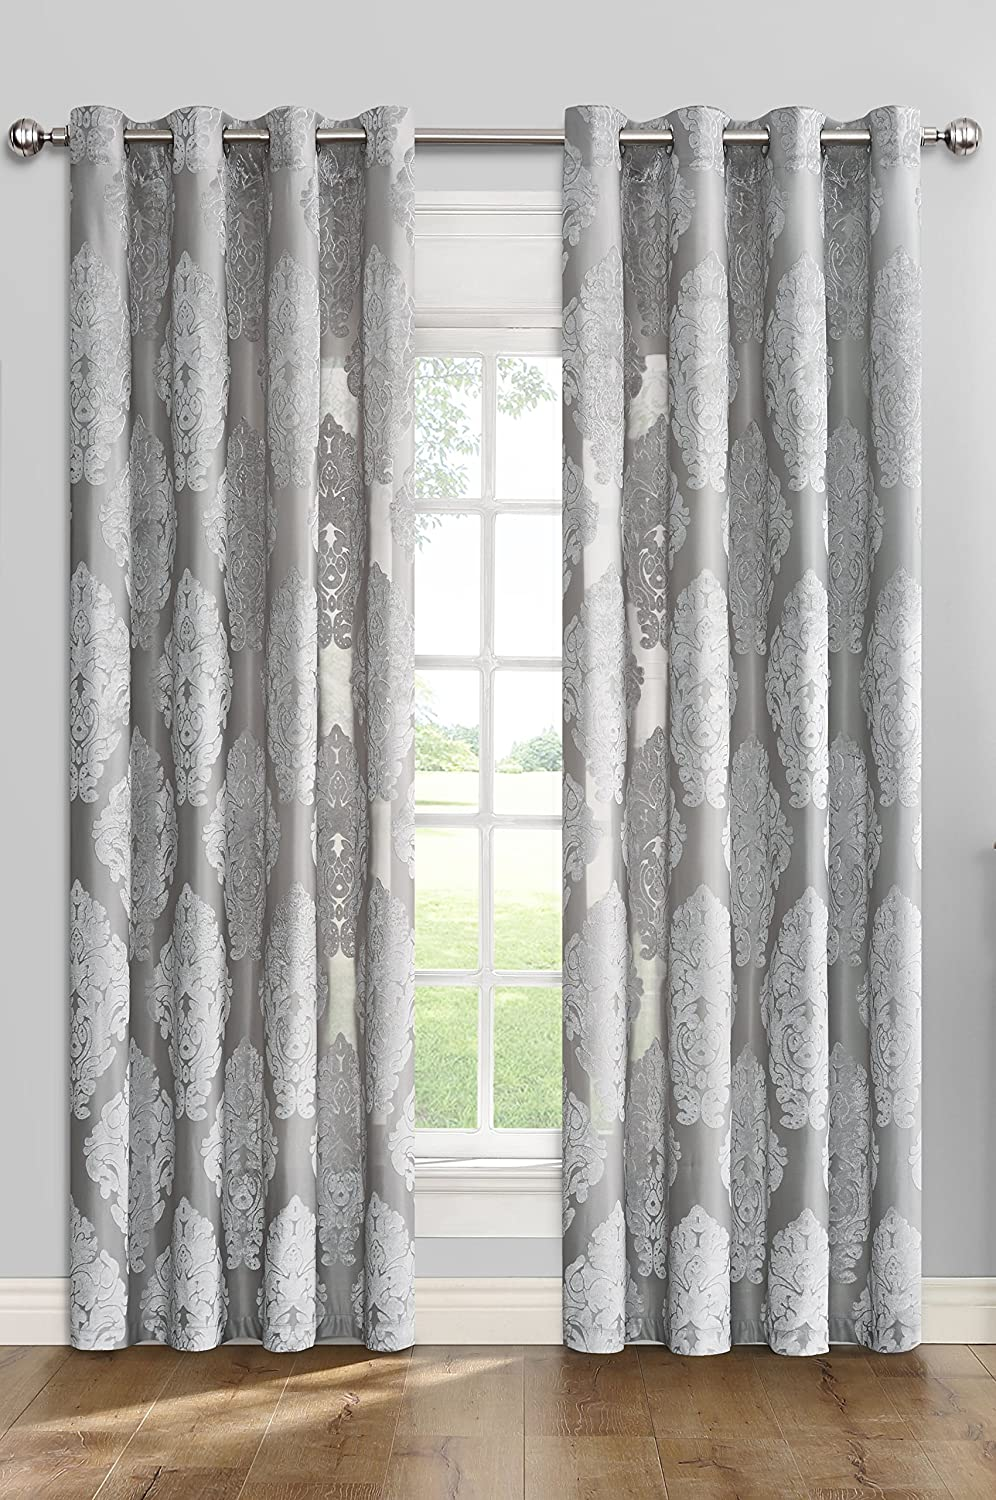 Flower Sheer Window Light Filtering Classic Curtains Drapes - Grey